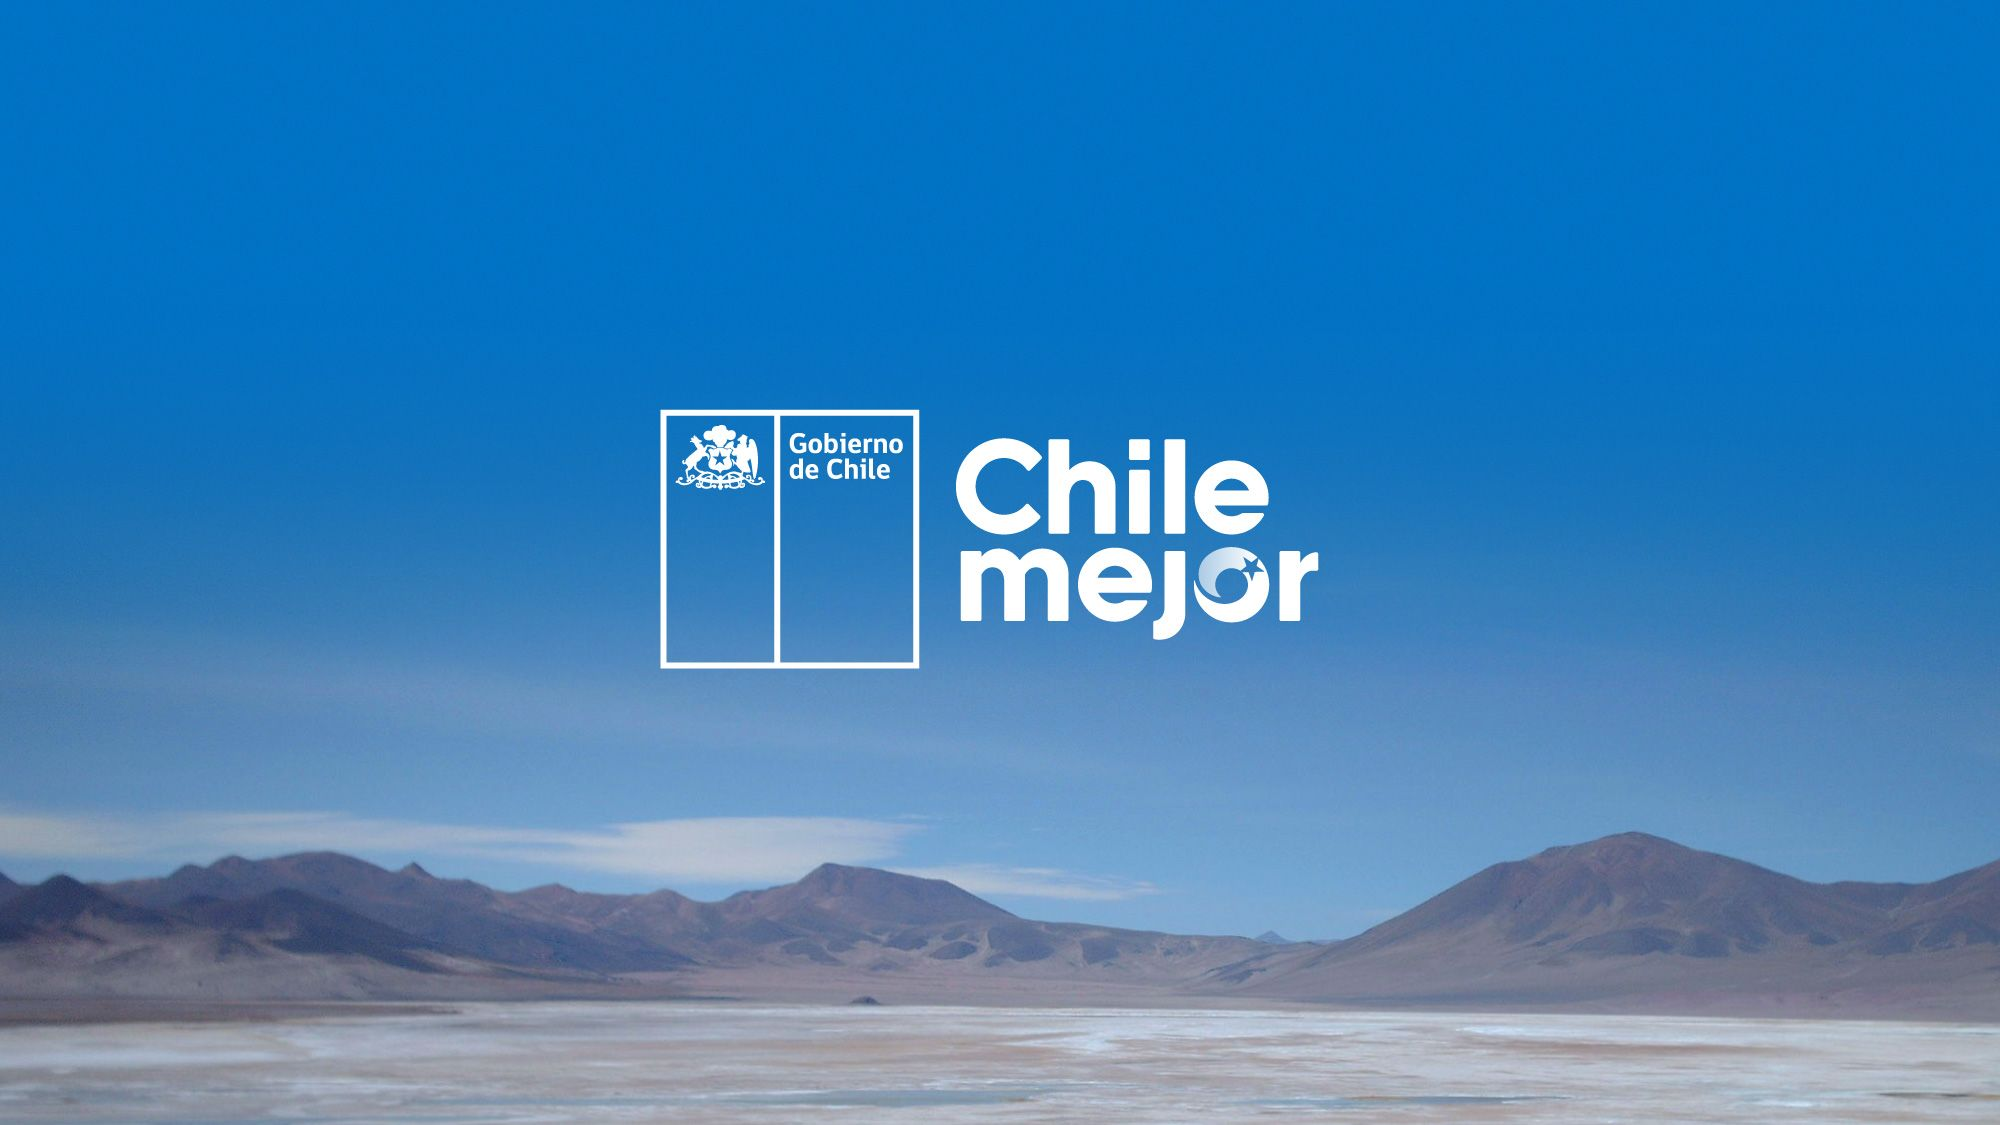 Chile Mejor